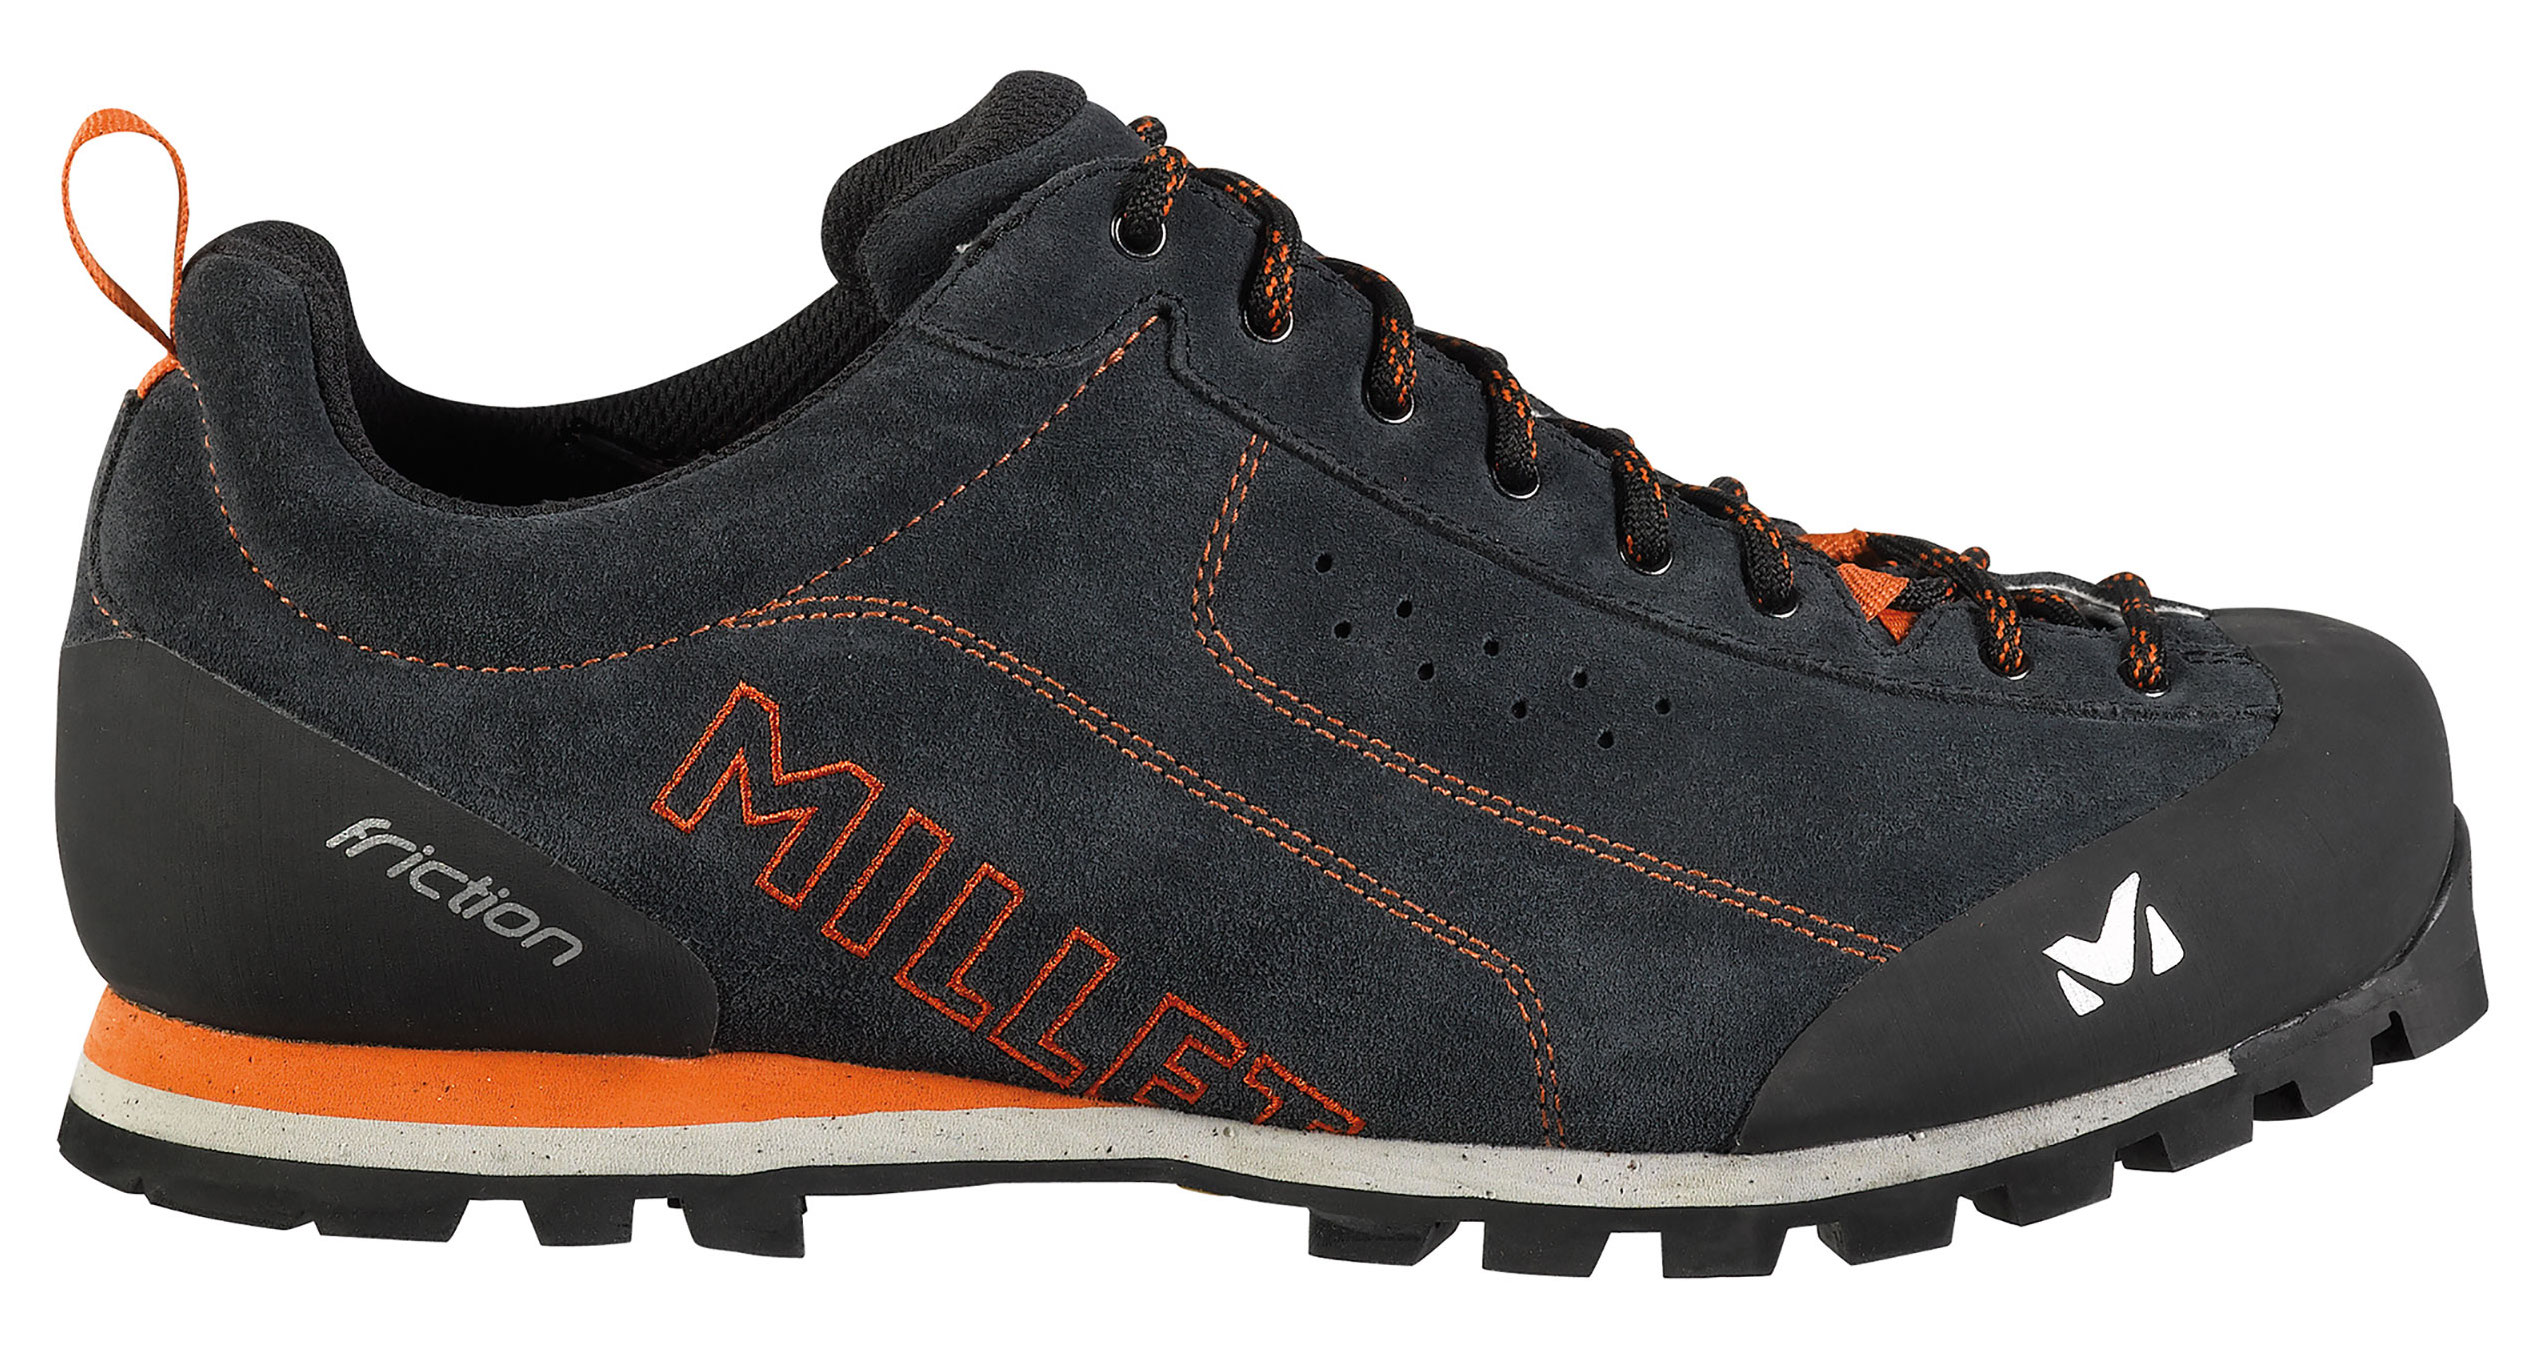 Millet - Friction - Approach shoes